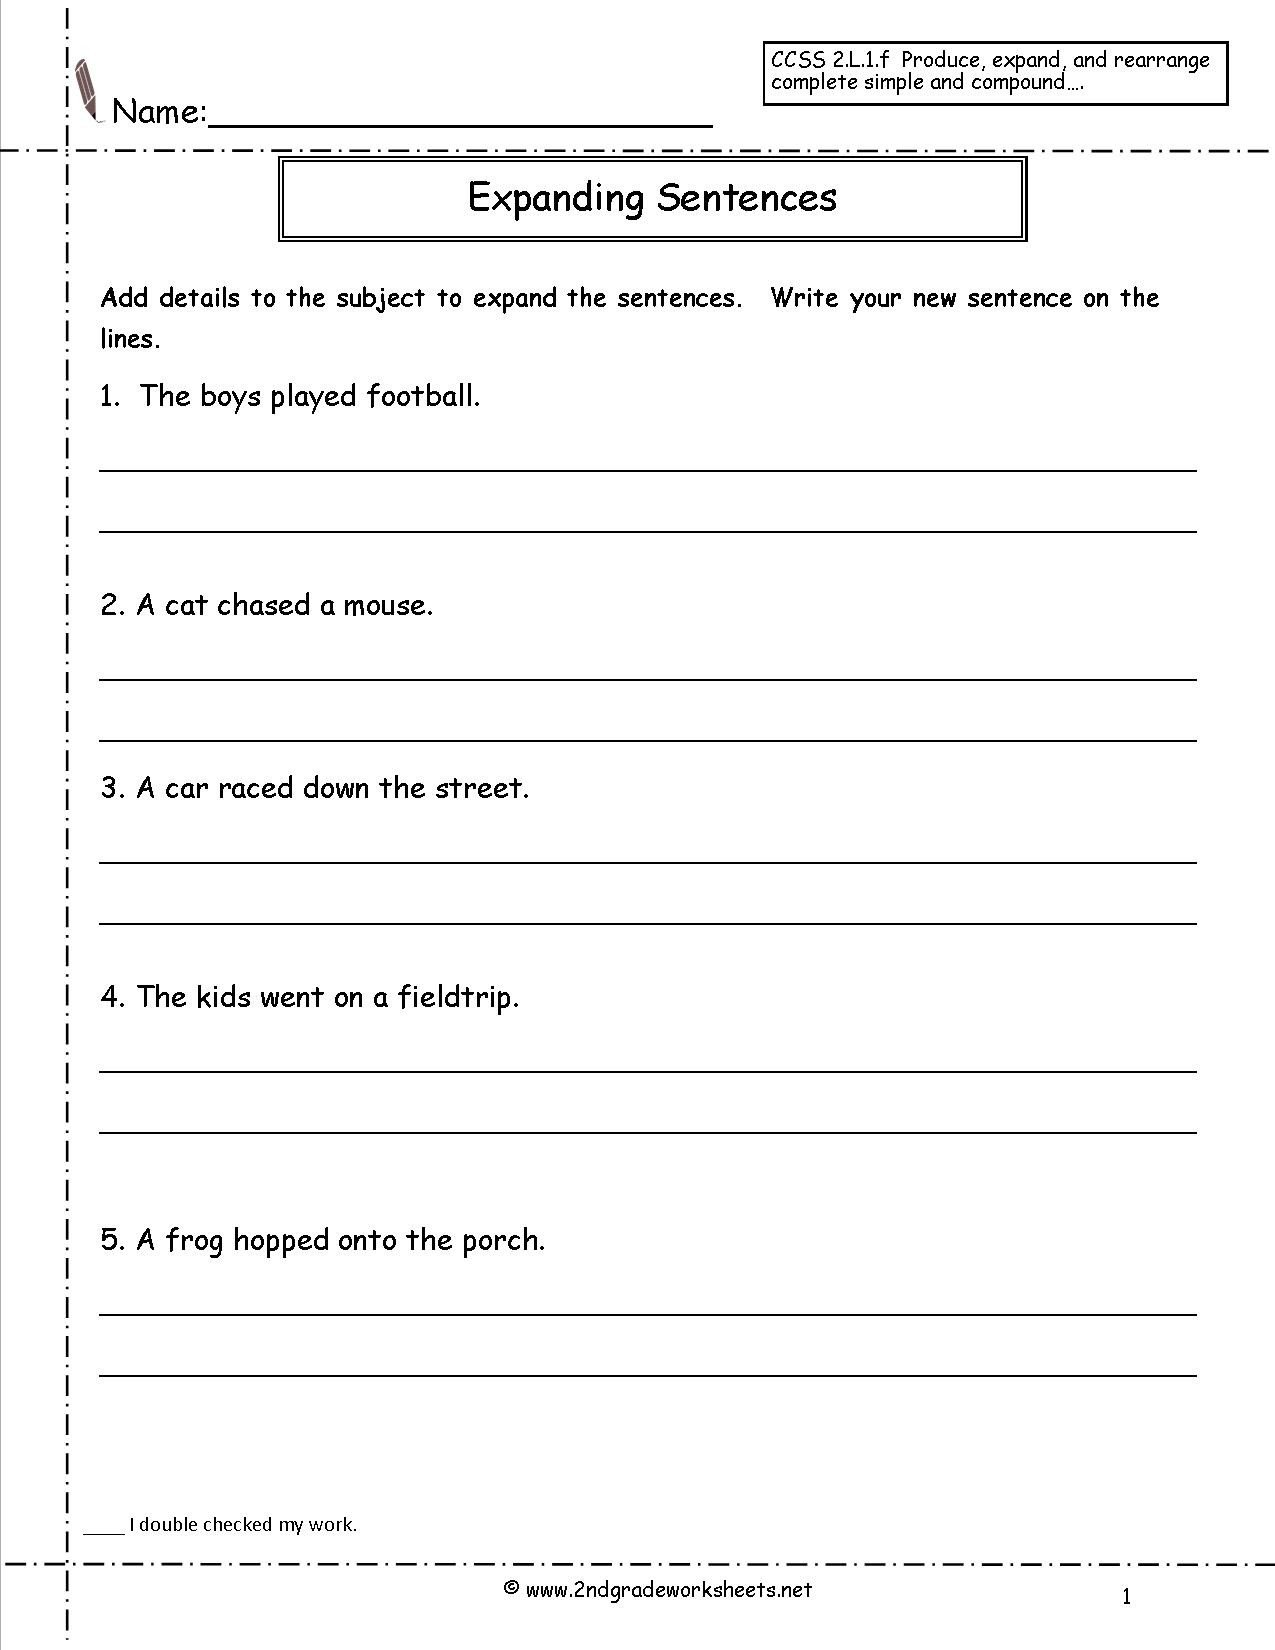 Complete Sentences Worksheets 2nd Grade Copy Sentence Worksheet First Grade Printable Worksheets and